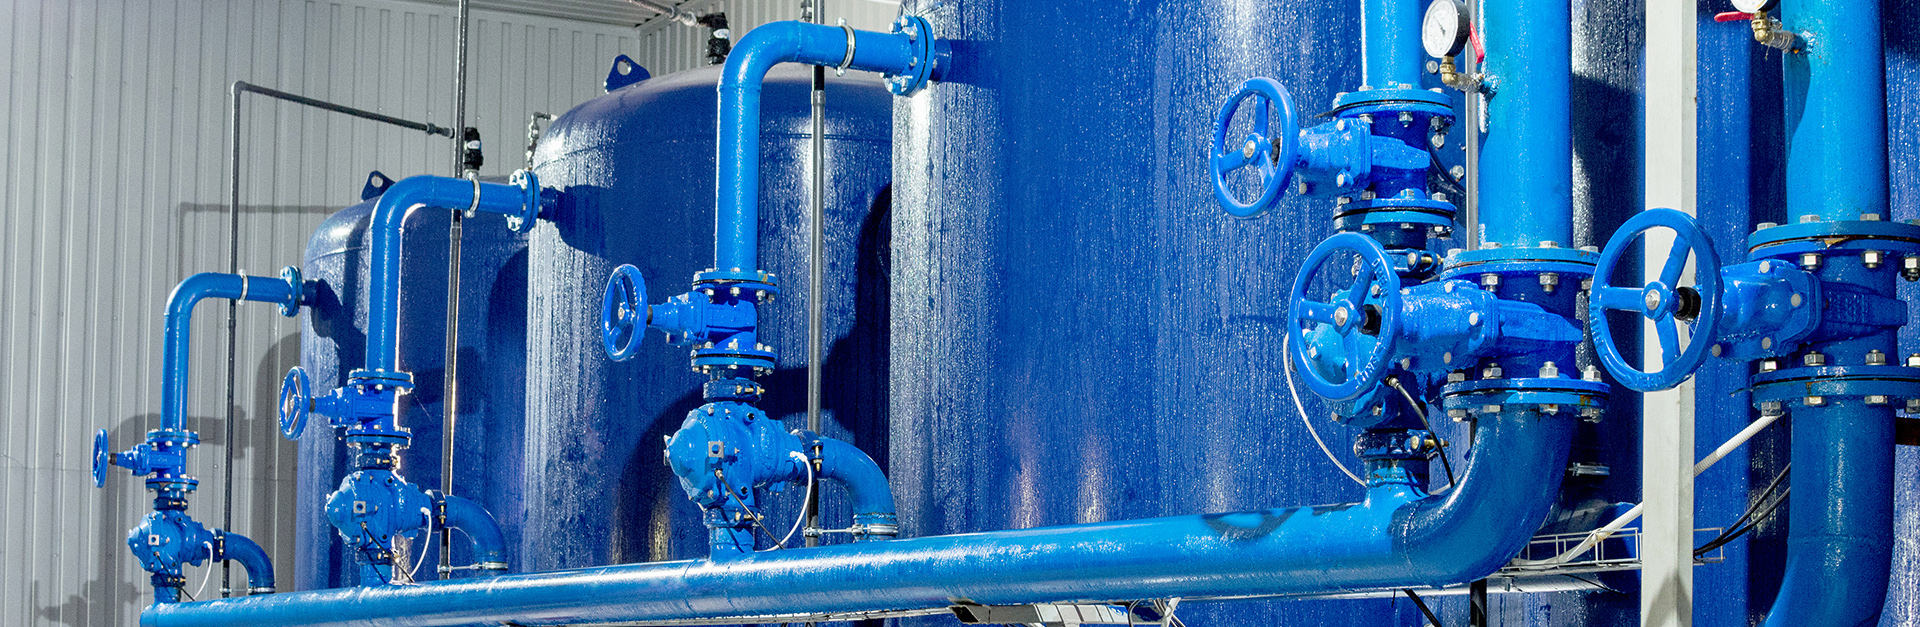 Water/Wastewater Treatment Industry Fabrication Solutions | Bendel